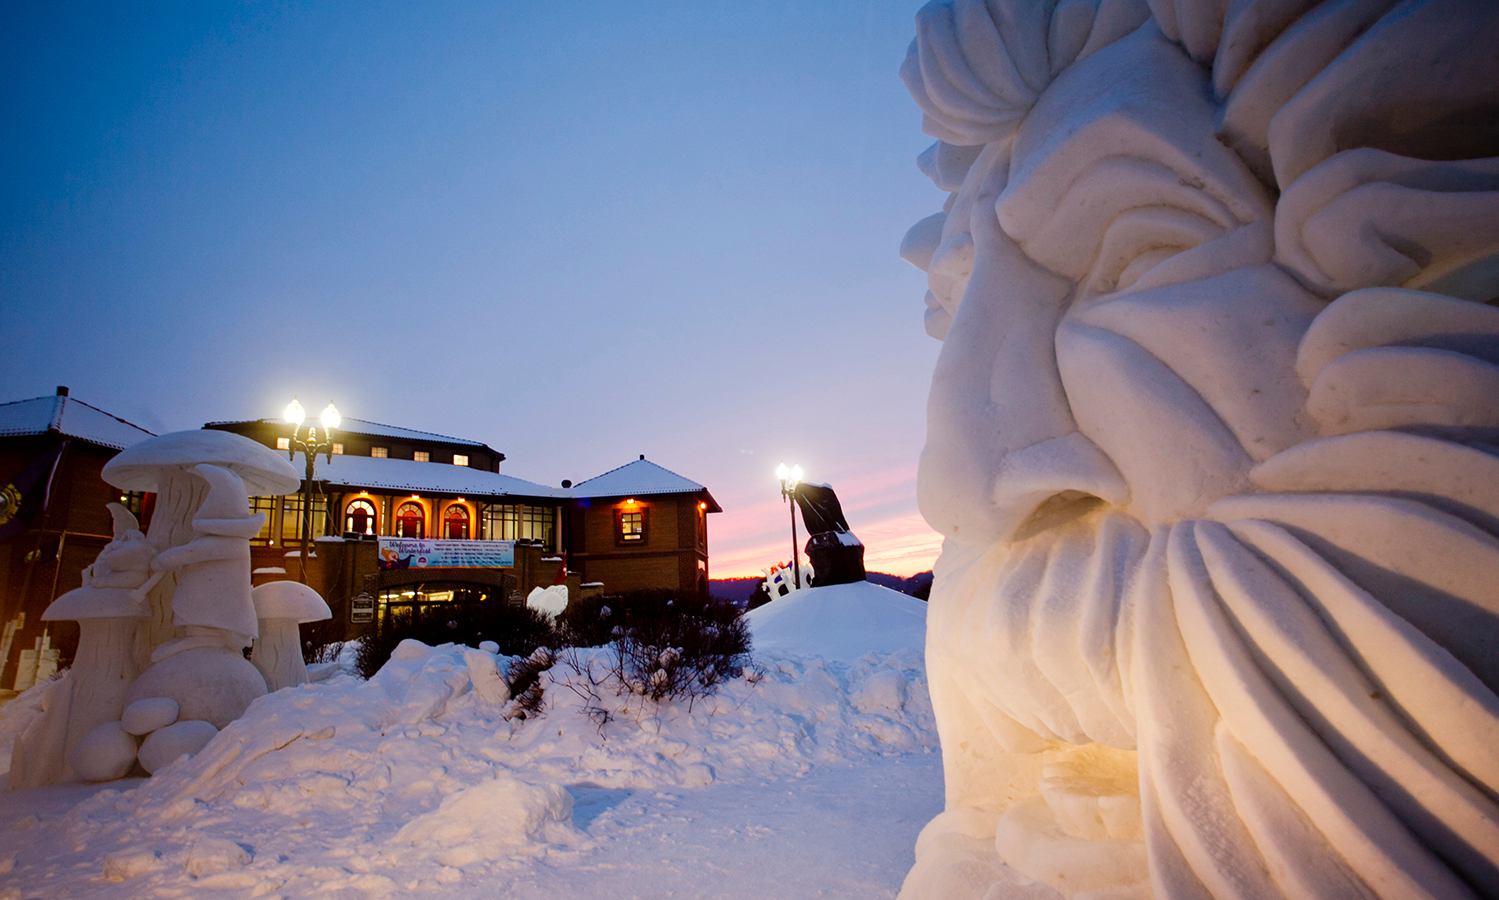 Whether you're looking for the perfect destination for Super Bowl Sunday, a romantic getaway for your Valentine, or the ideal winter solution for cabin fever, Lake Geneva's upcoming Winterfest & U.S. National Snow Sculpting Competition – taking place Feb. 1-13 – will have you covered.